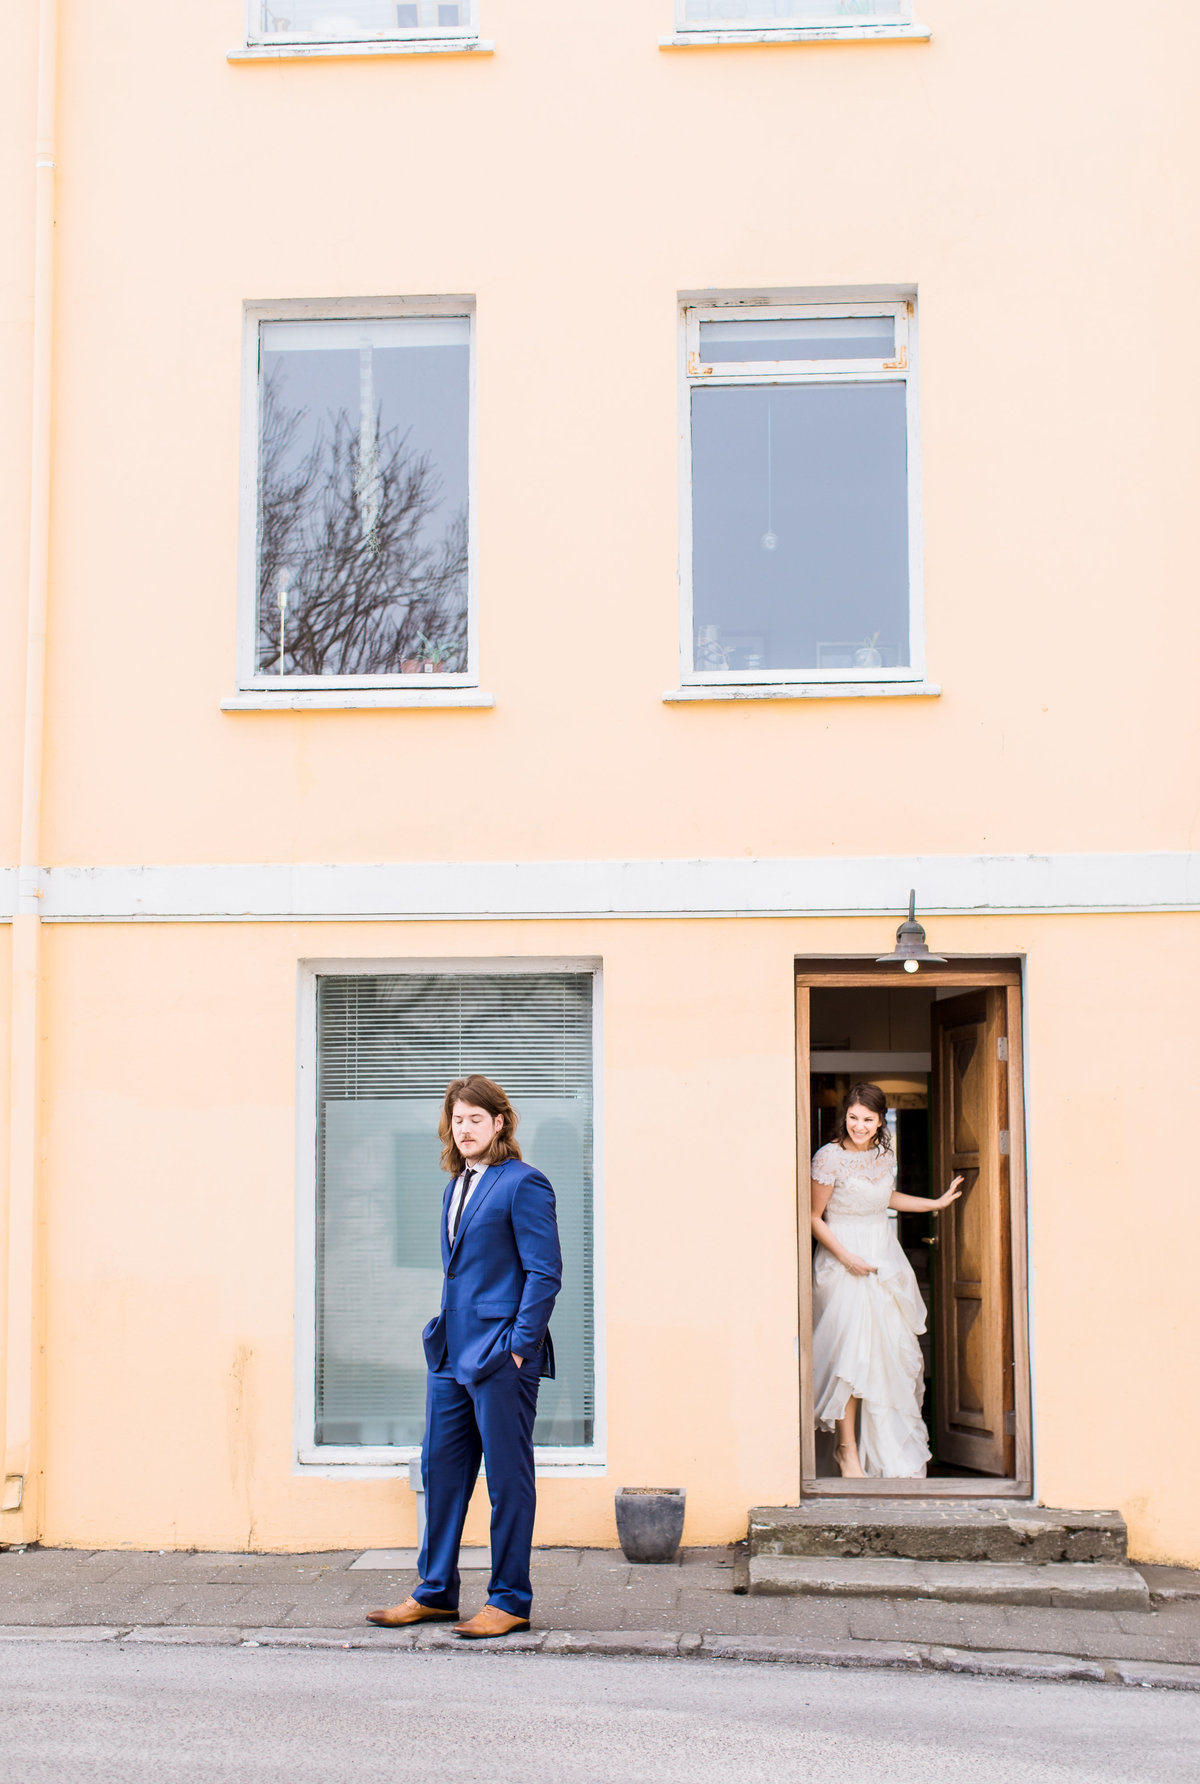 IcelandWedding_OliviaScott_DestinationWedding_CatherineRhodesPhotography-129-Edit